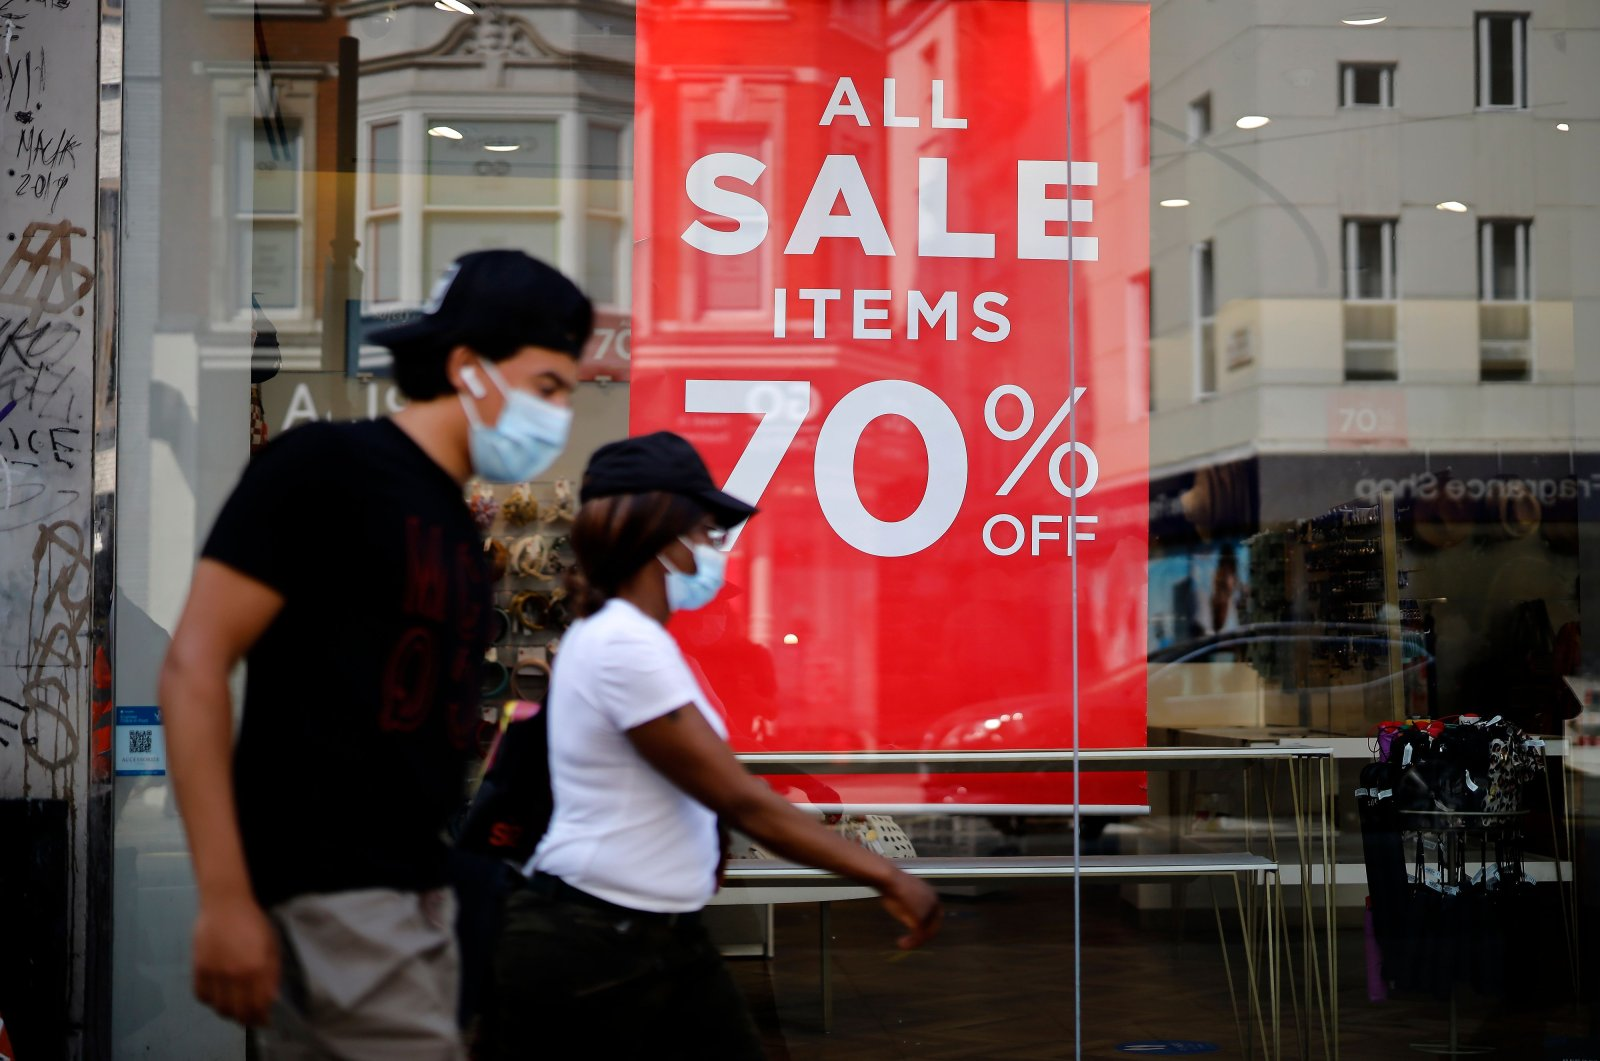 Shoppers wearing face coverings due to the COVID-19 pandemic walk past sales signs in a shop window in London, Aug. 12, 2020. (AFP Photo)